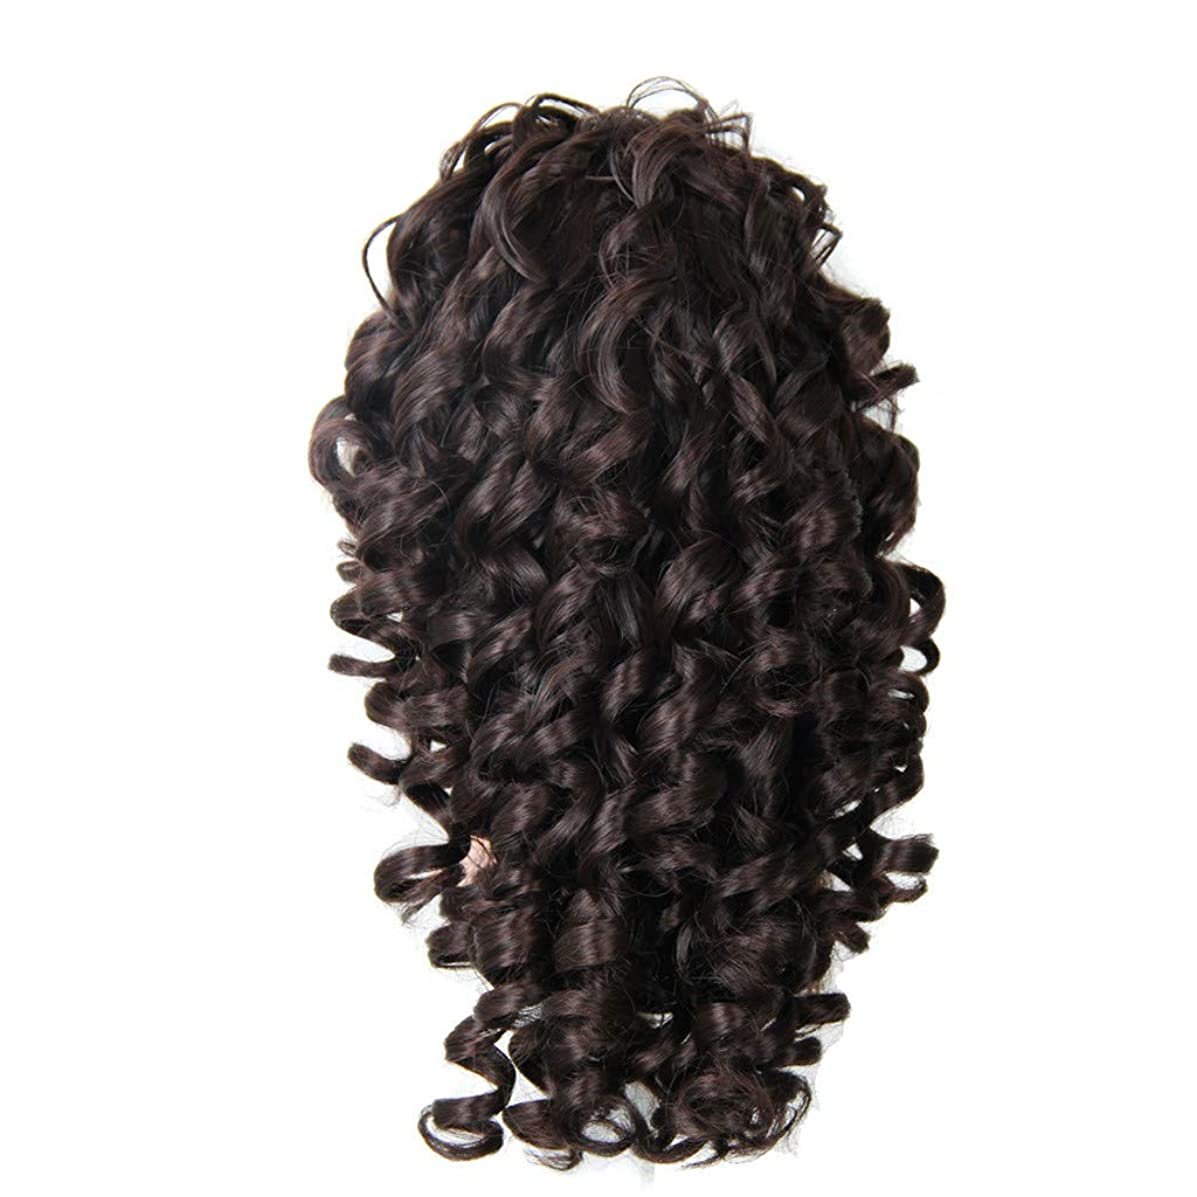 Hair Wig Outdoor,FAPIZI Lace Front Human Hair Wigs Pre Plucked with Baby Hair Curly Brazilian Remy Hair Wig